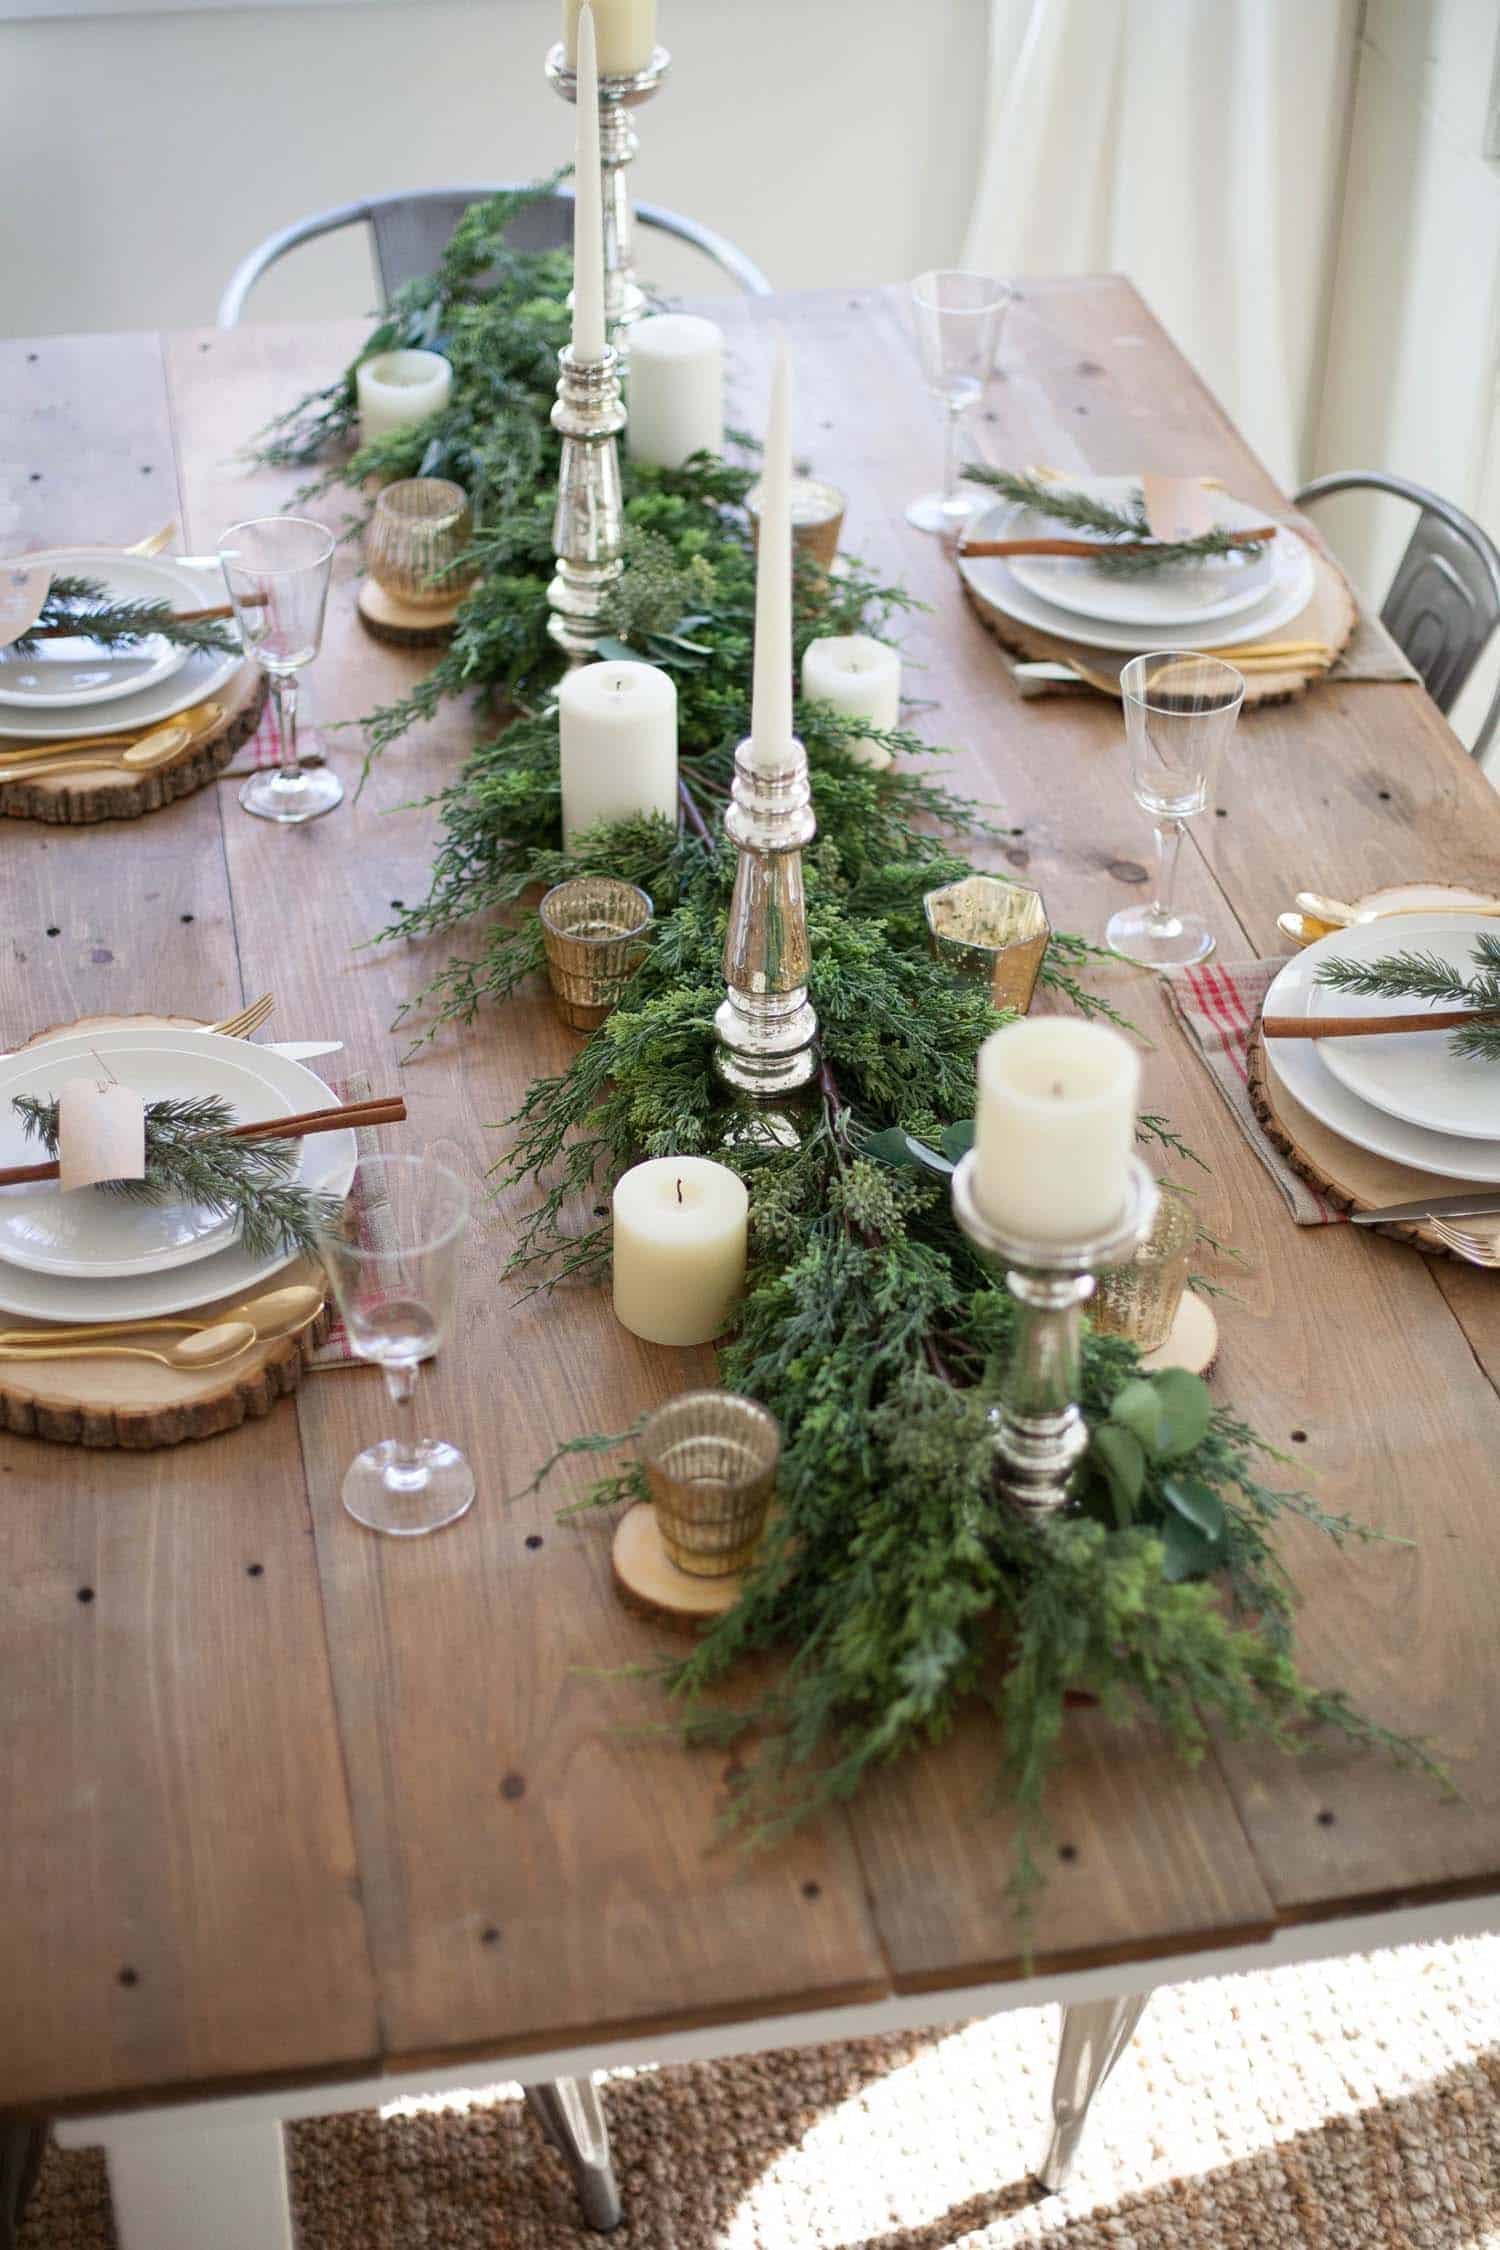 Magnificent 33 Inspiring Christmas Decor Ideas To Elevate Your Dining Table Home Interior And Landscaping Ologienasavecom